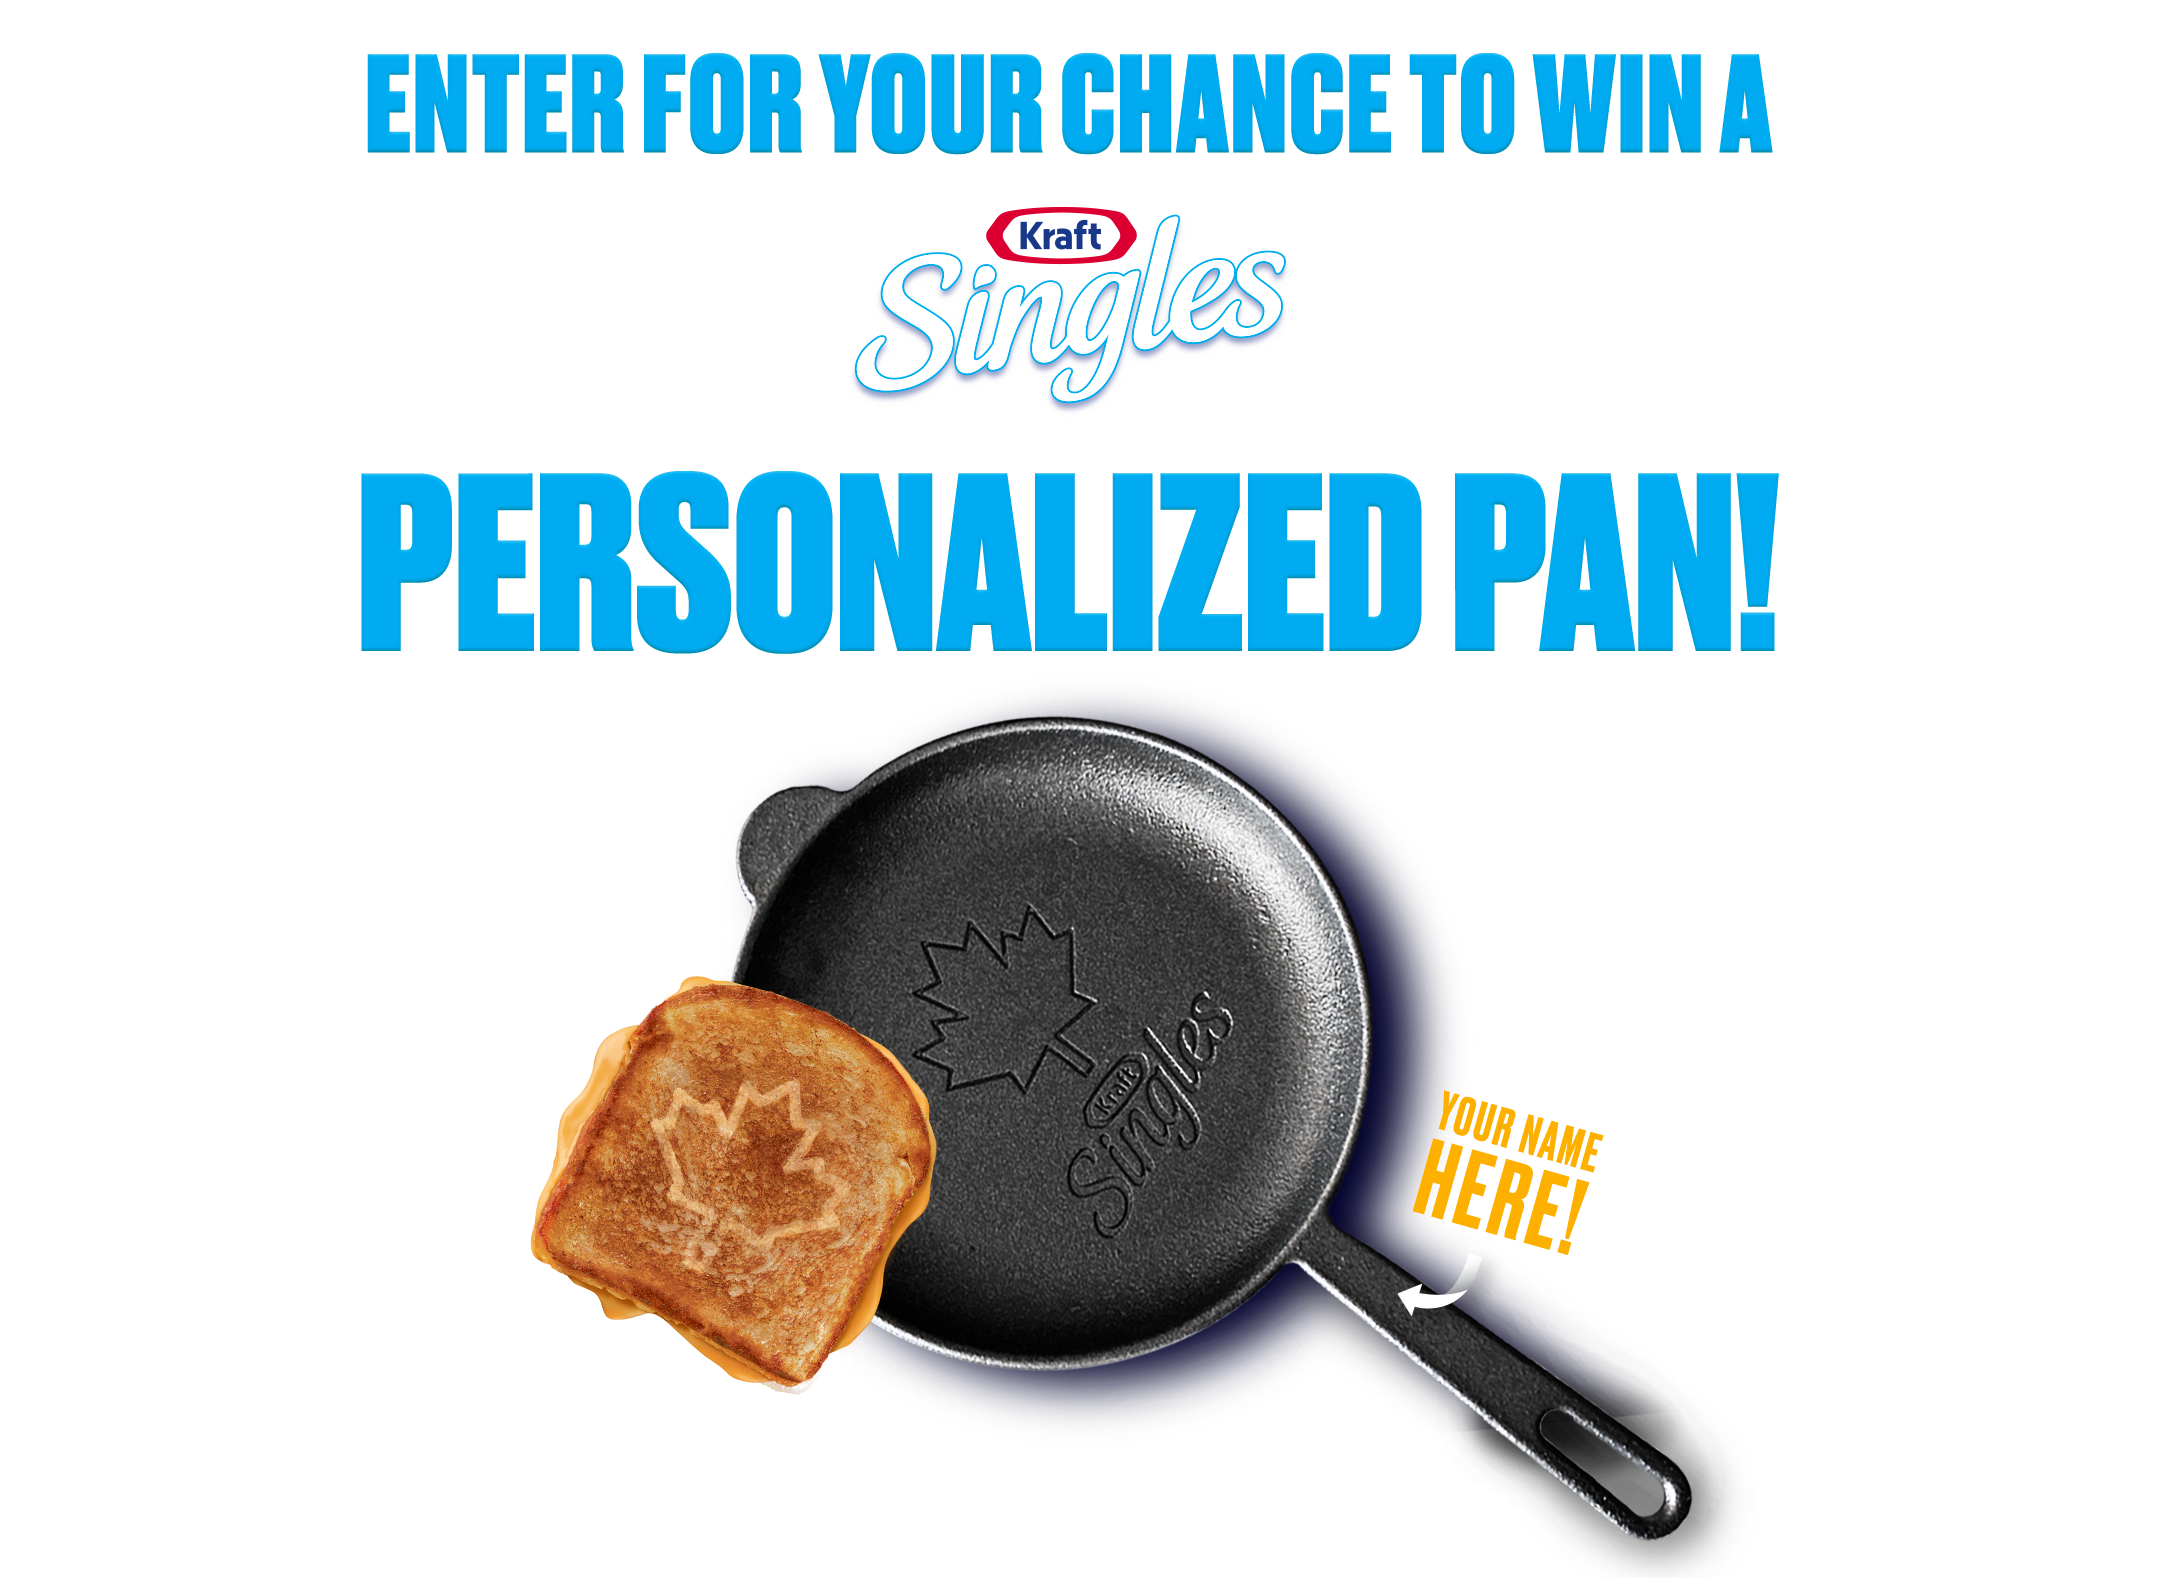 Enter for your chance to win a Kraft Singles Personalized Pan!